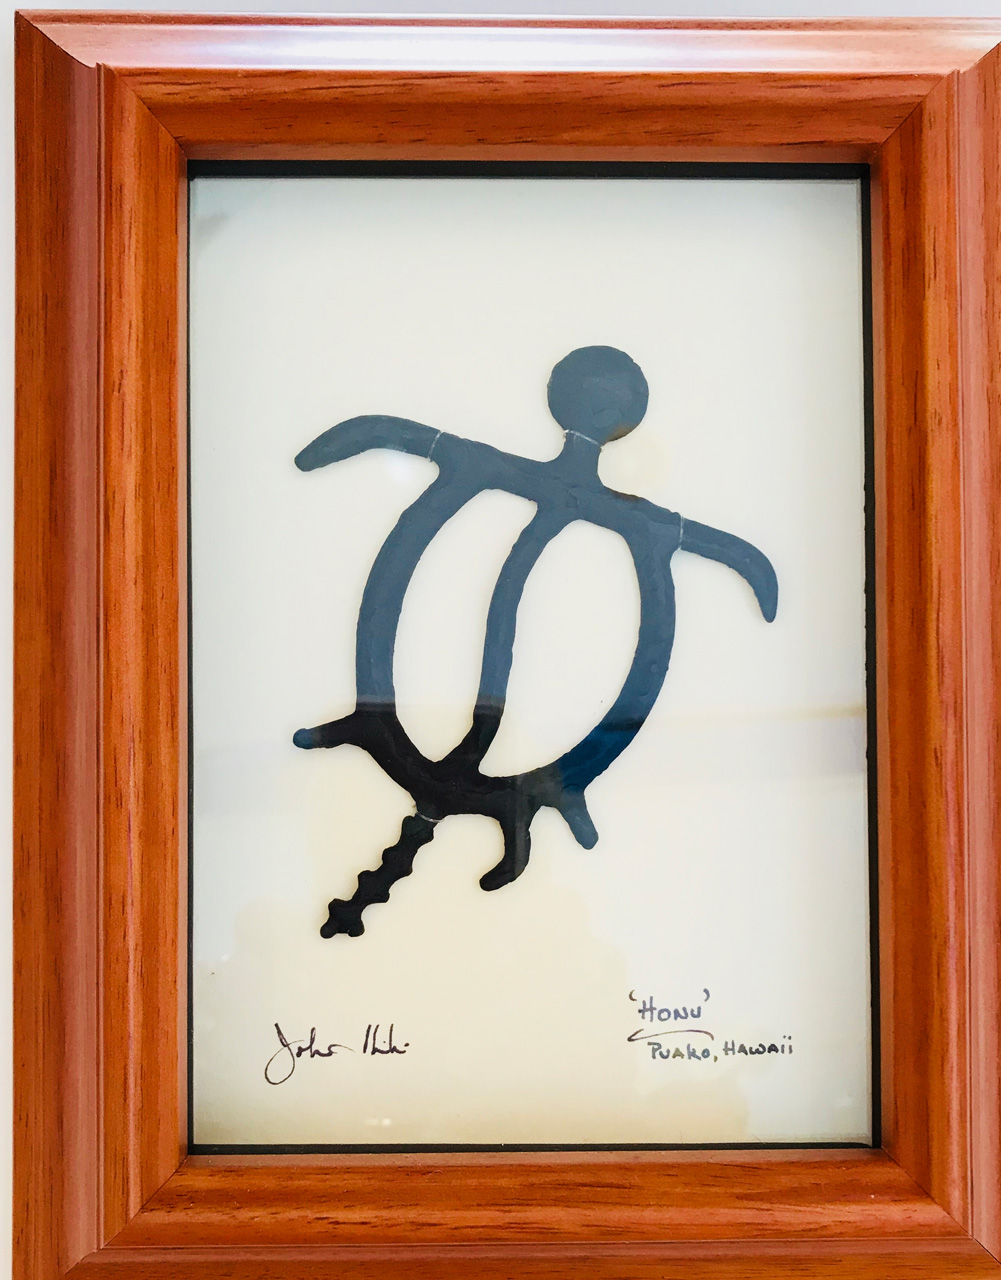 """Honu"" Bronze/Pewter Framed Shadowbox Sculpture by John Ilnicki"